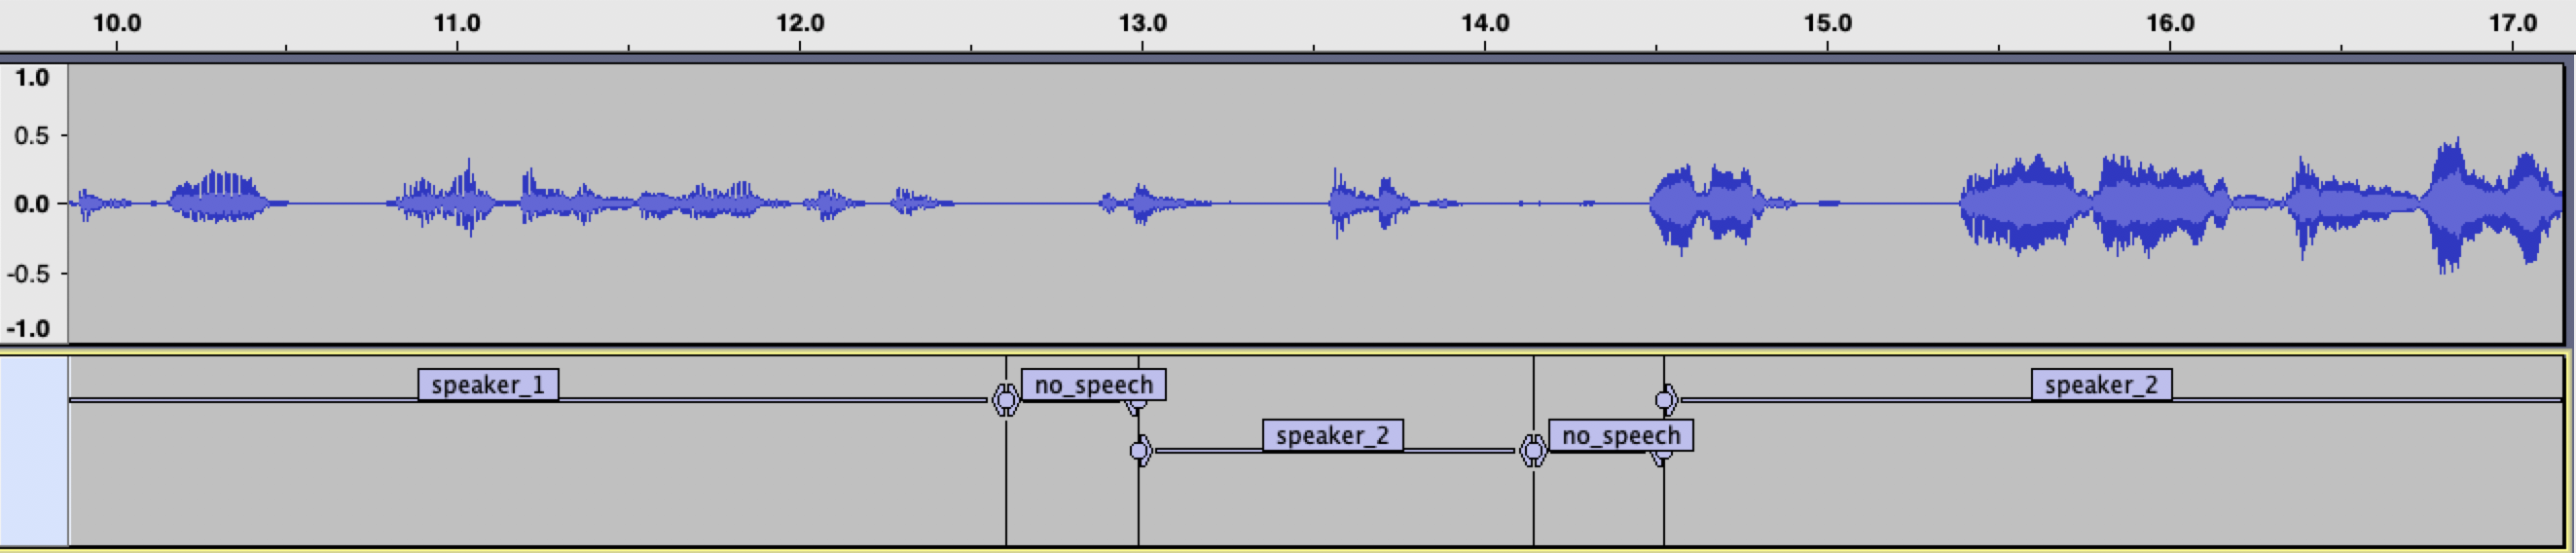 Audacity speakers result